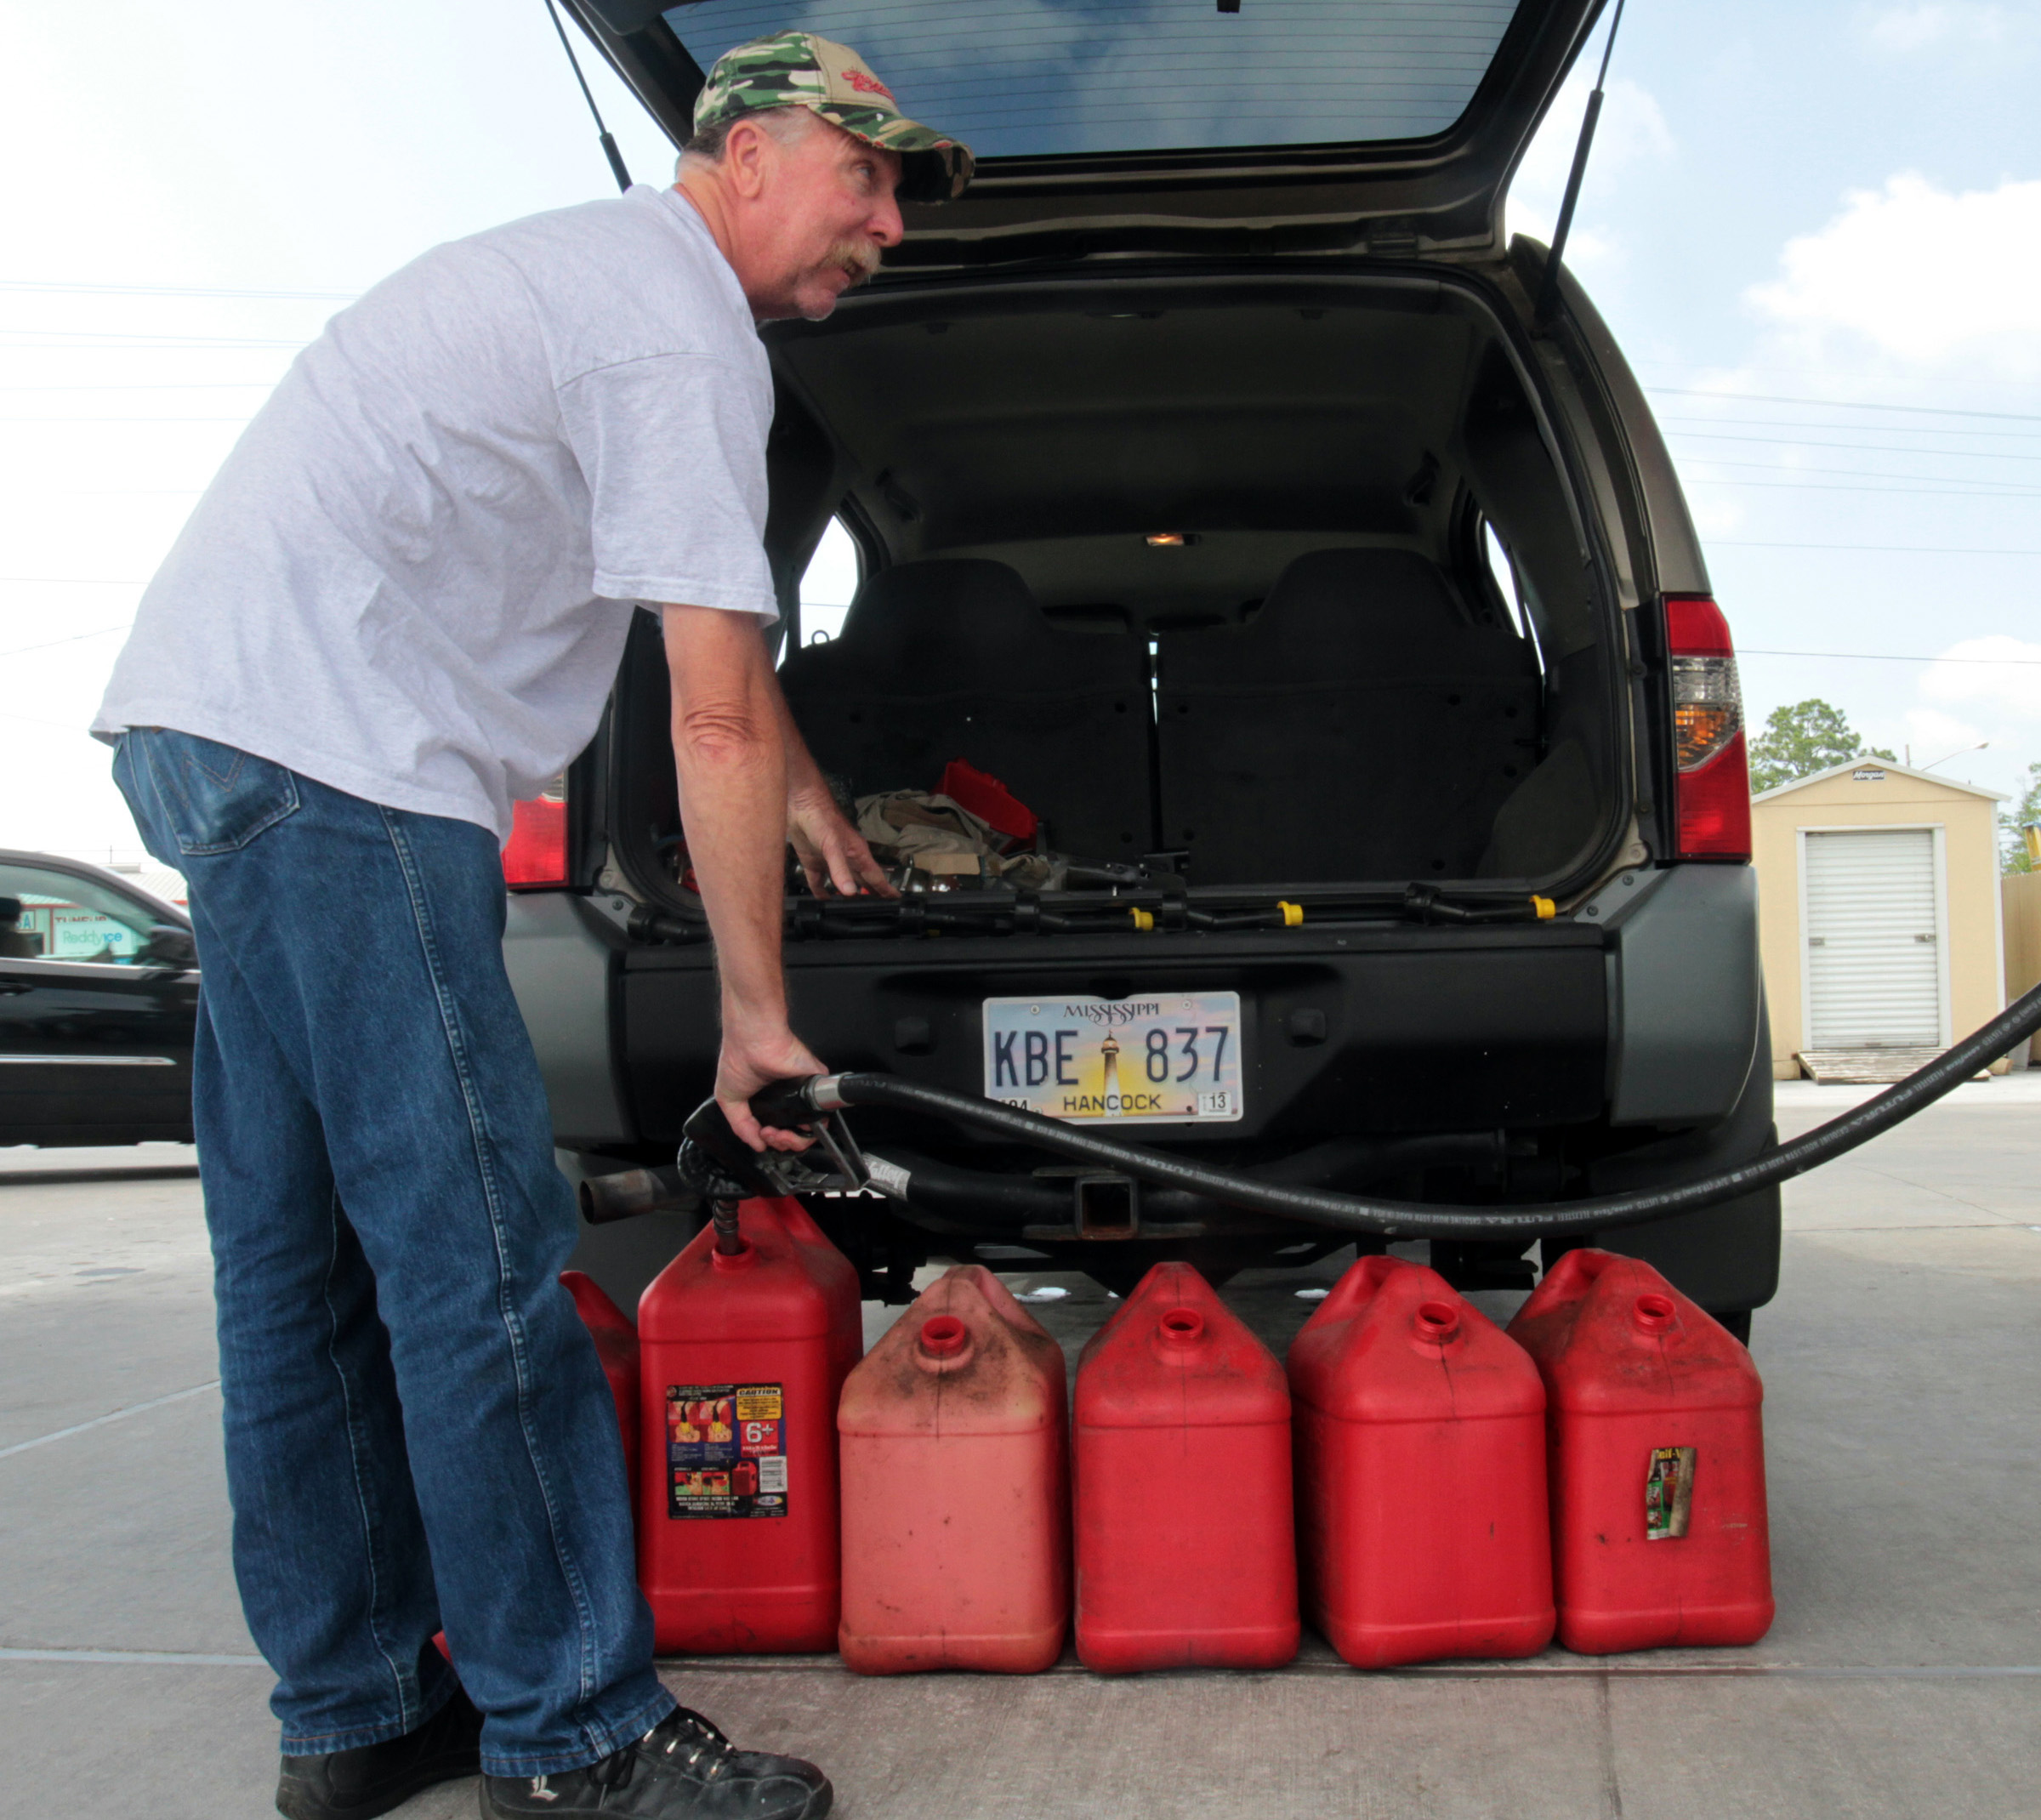 J.D. Wood of Bay St. Louis, Mississippi, fills gas cans for his boat at the Walmart in Waveland, Mississippi, on Wednesday, May 9, 2012. (John Fitzhugh/Biloxi Sun Herald